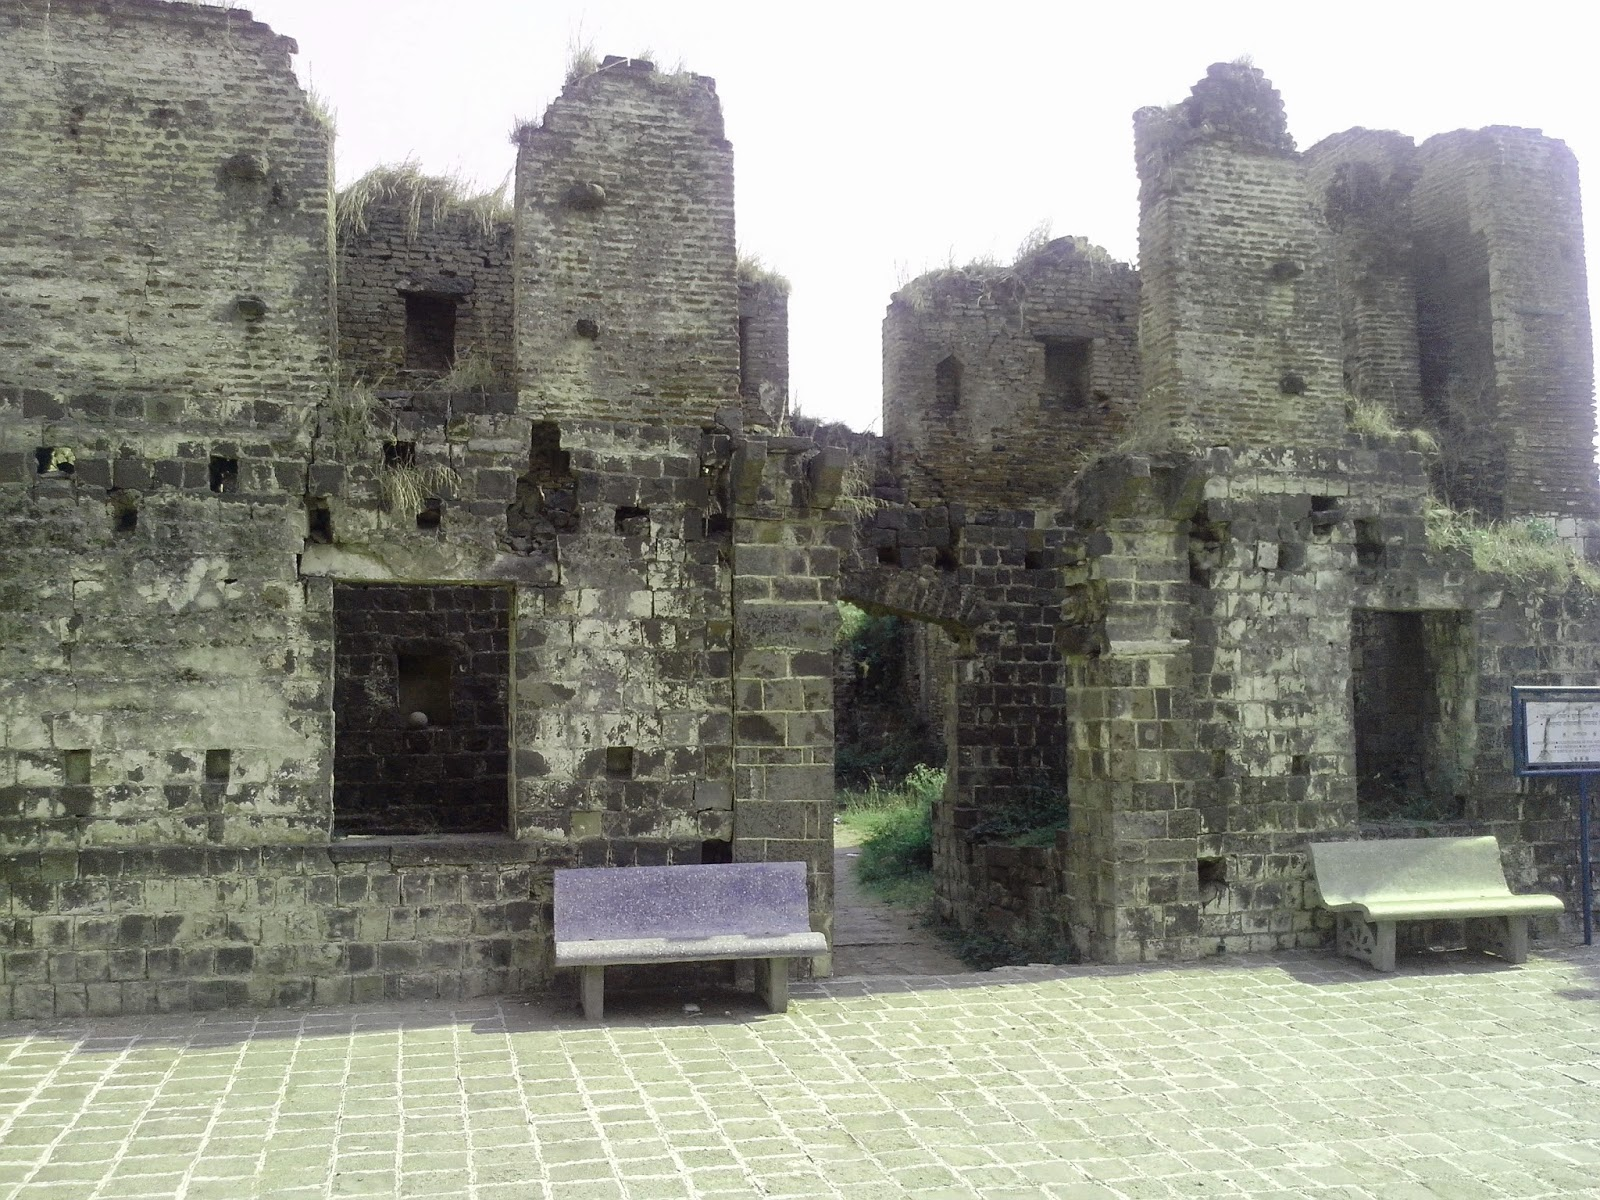 kandhar fort pillars